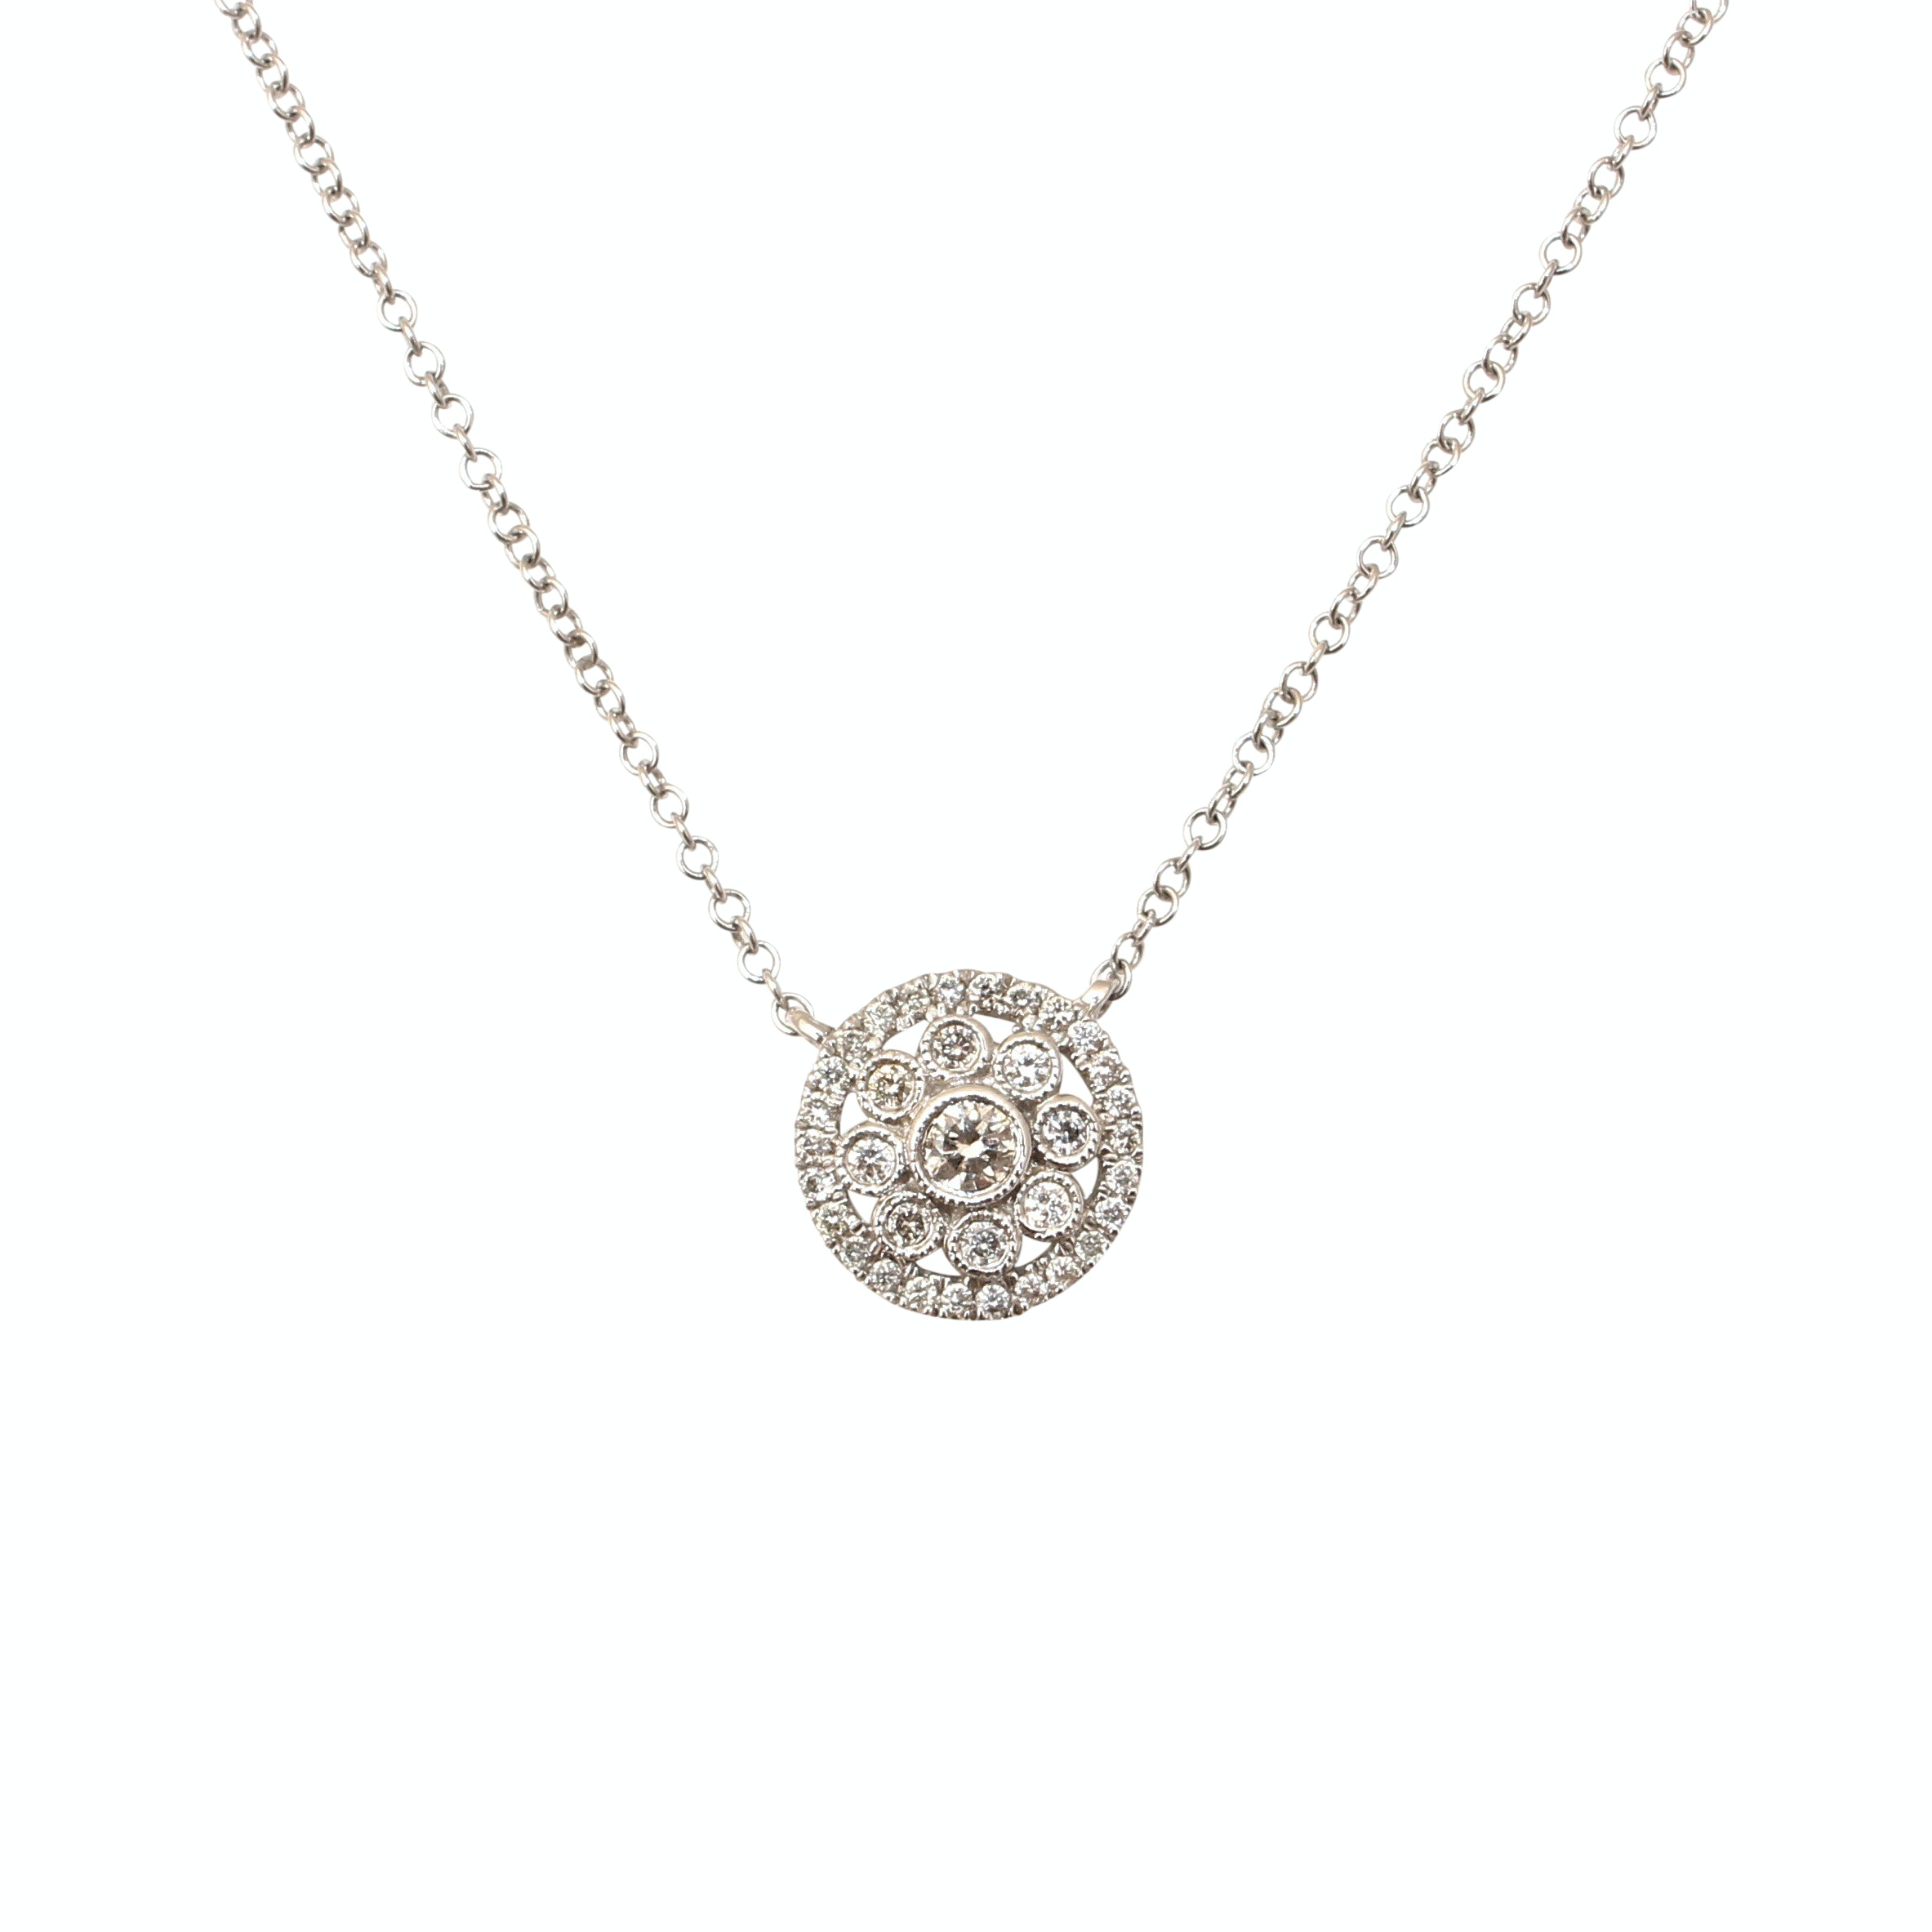 Gabriel & Co. 14K White Gold Diamond Necklace